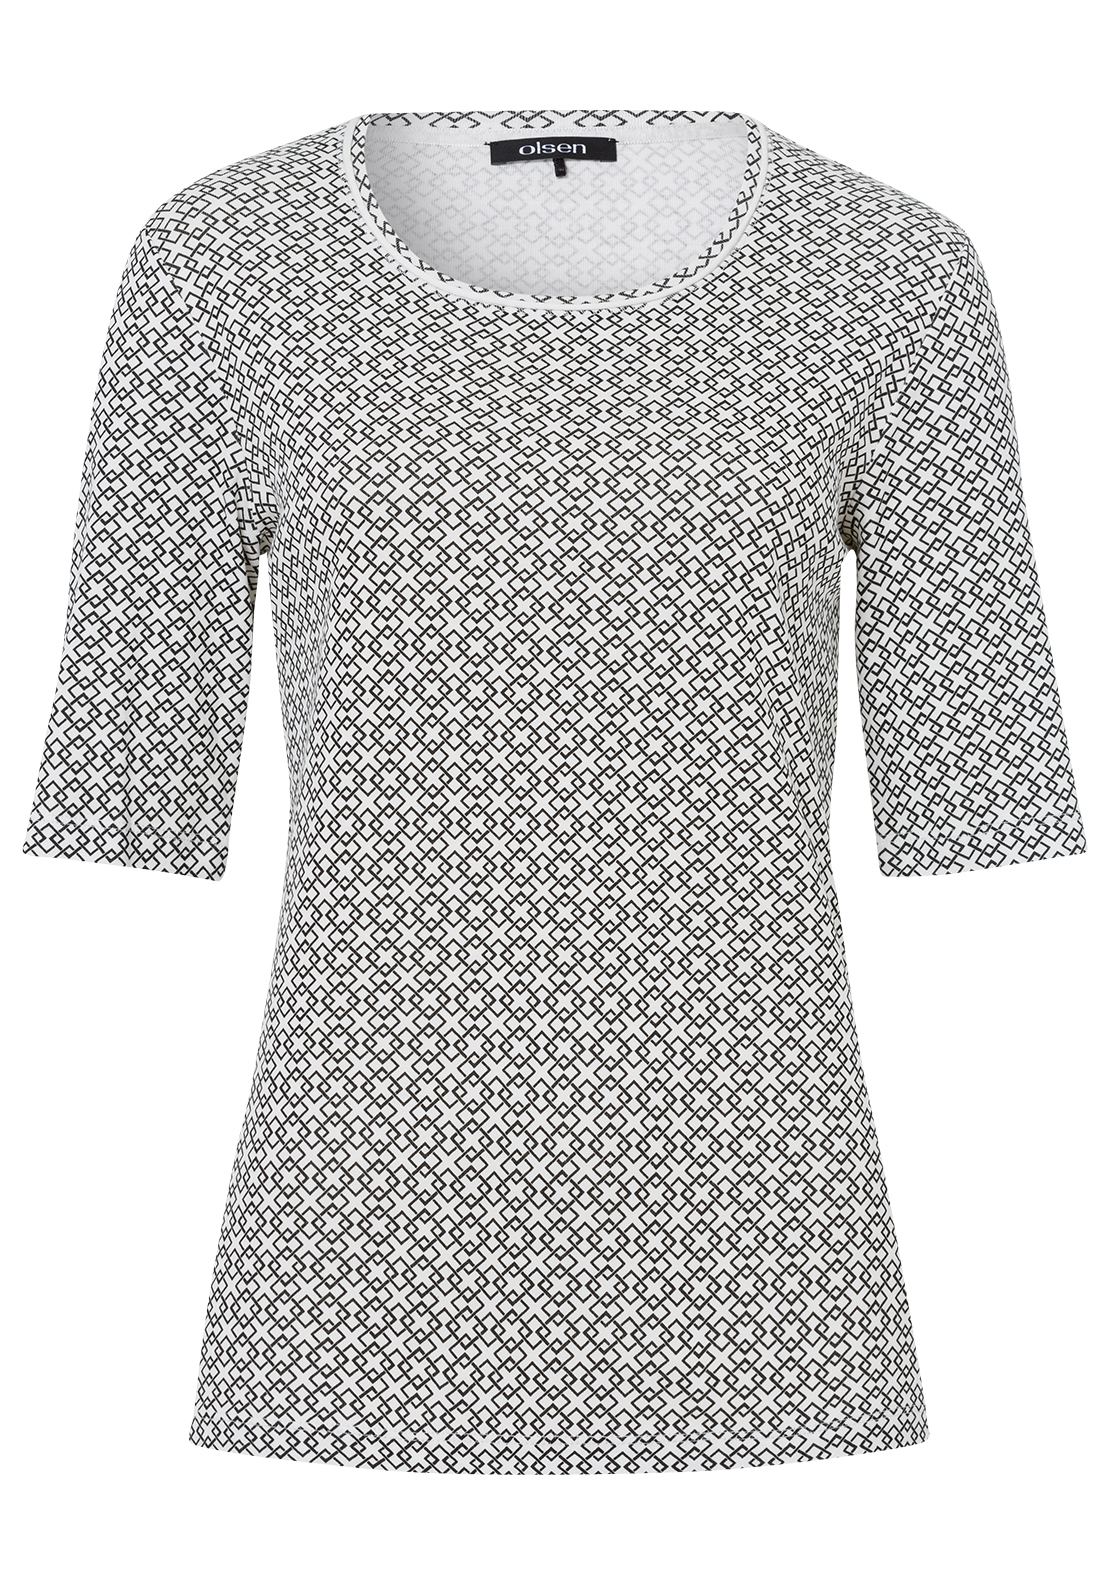 Olsen Diamond Print Half Sleeve T-Shirt, Black and White